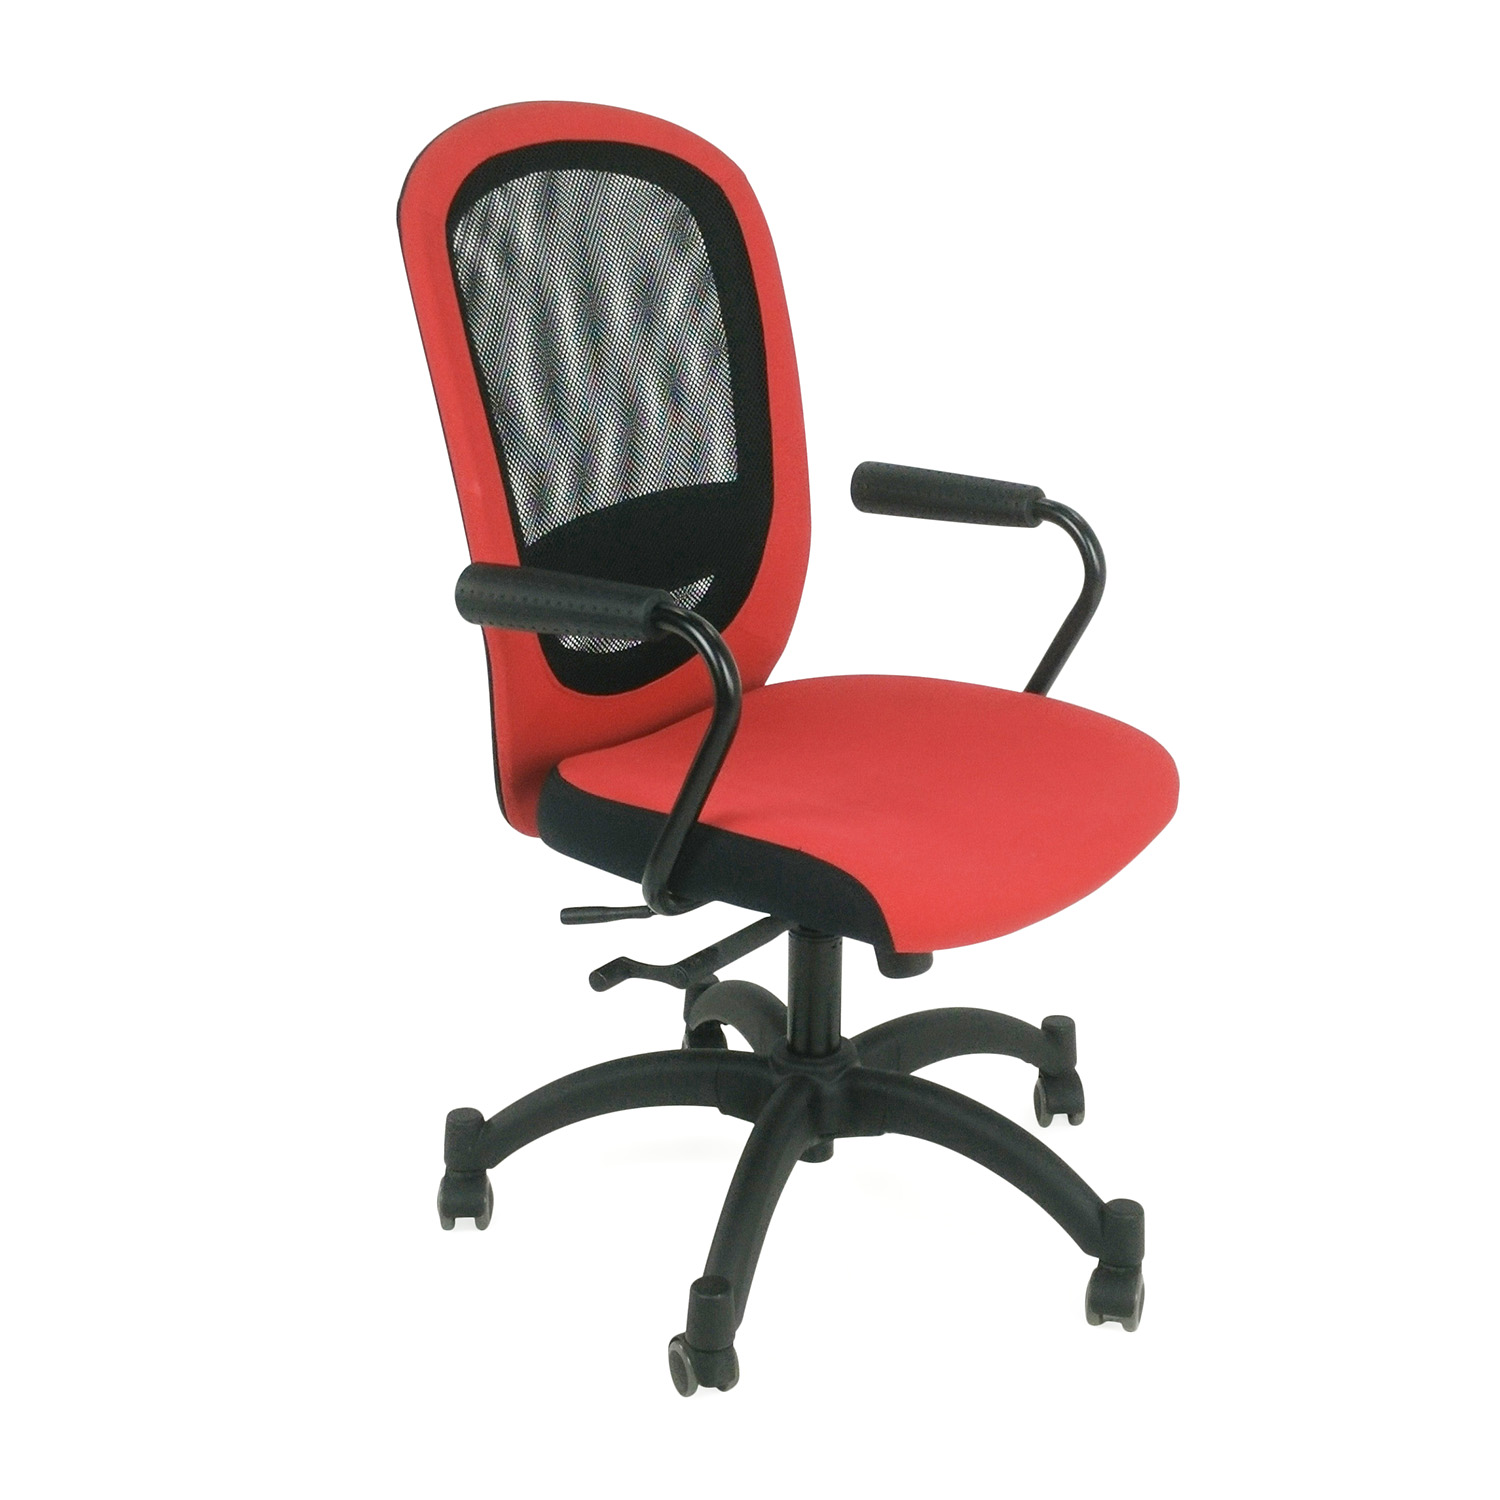 office furniture ikea uk. IKEA Red Office Chair Coupon Furniture Ikea Uk F